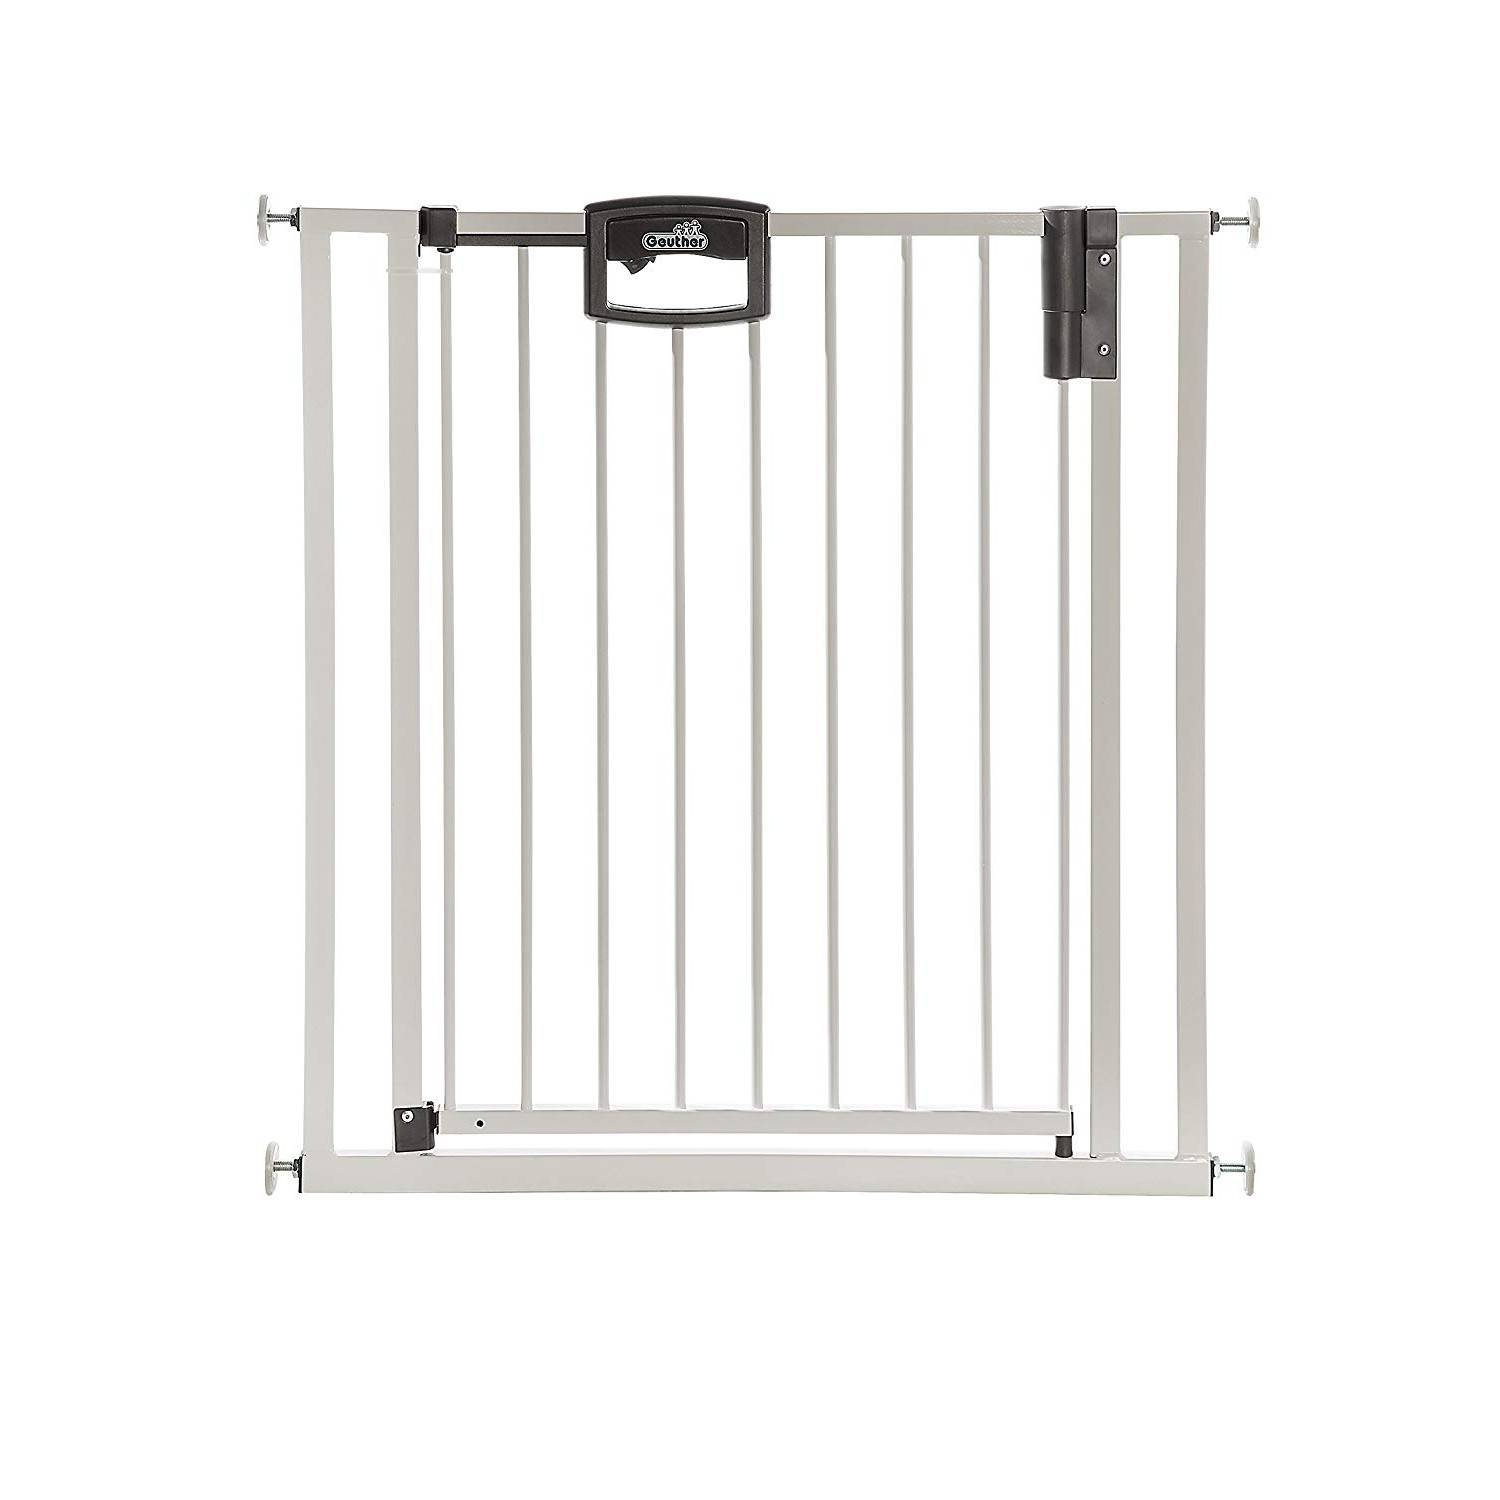 Geuther Cancelletto Geuther Easylock +